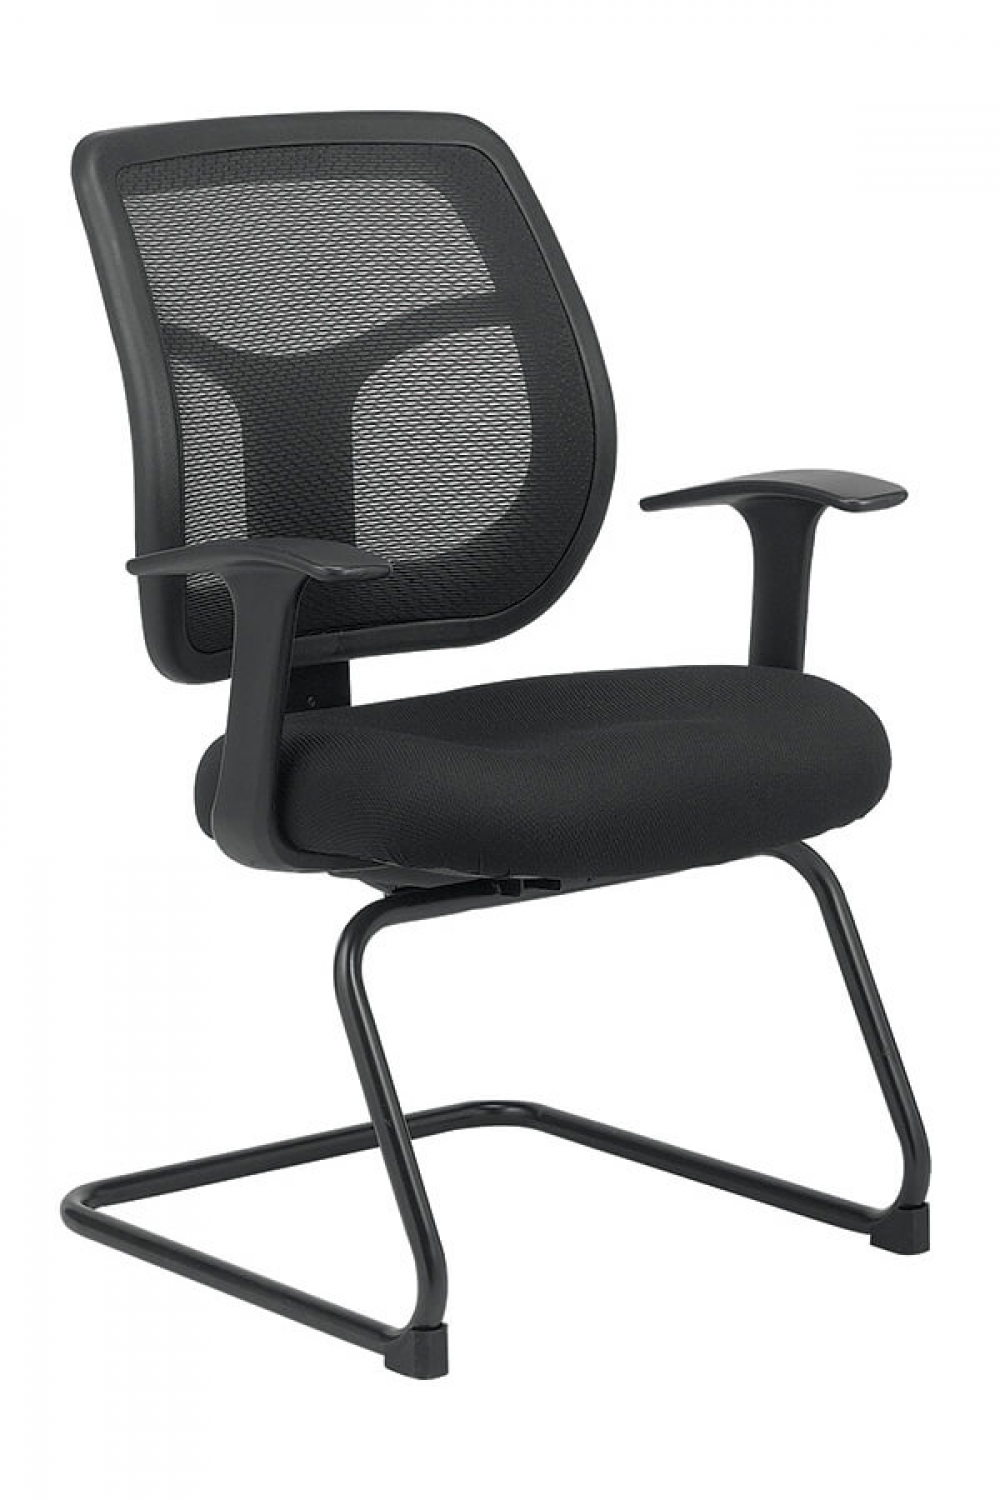 Office furniture chairs guest office chairs